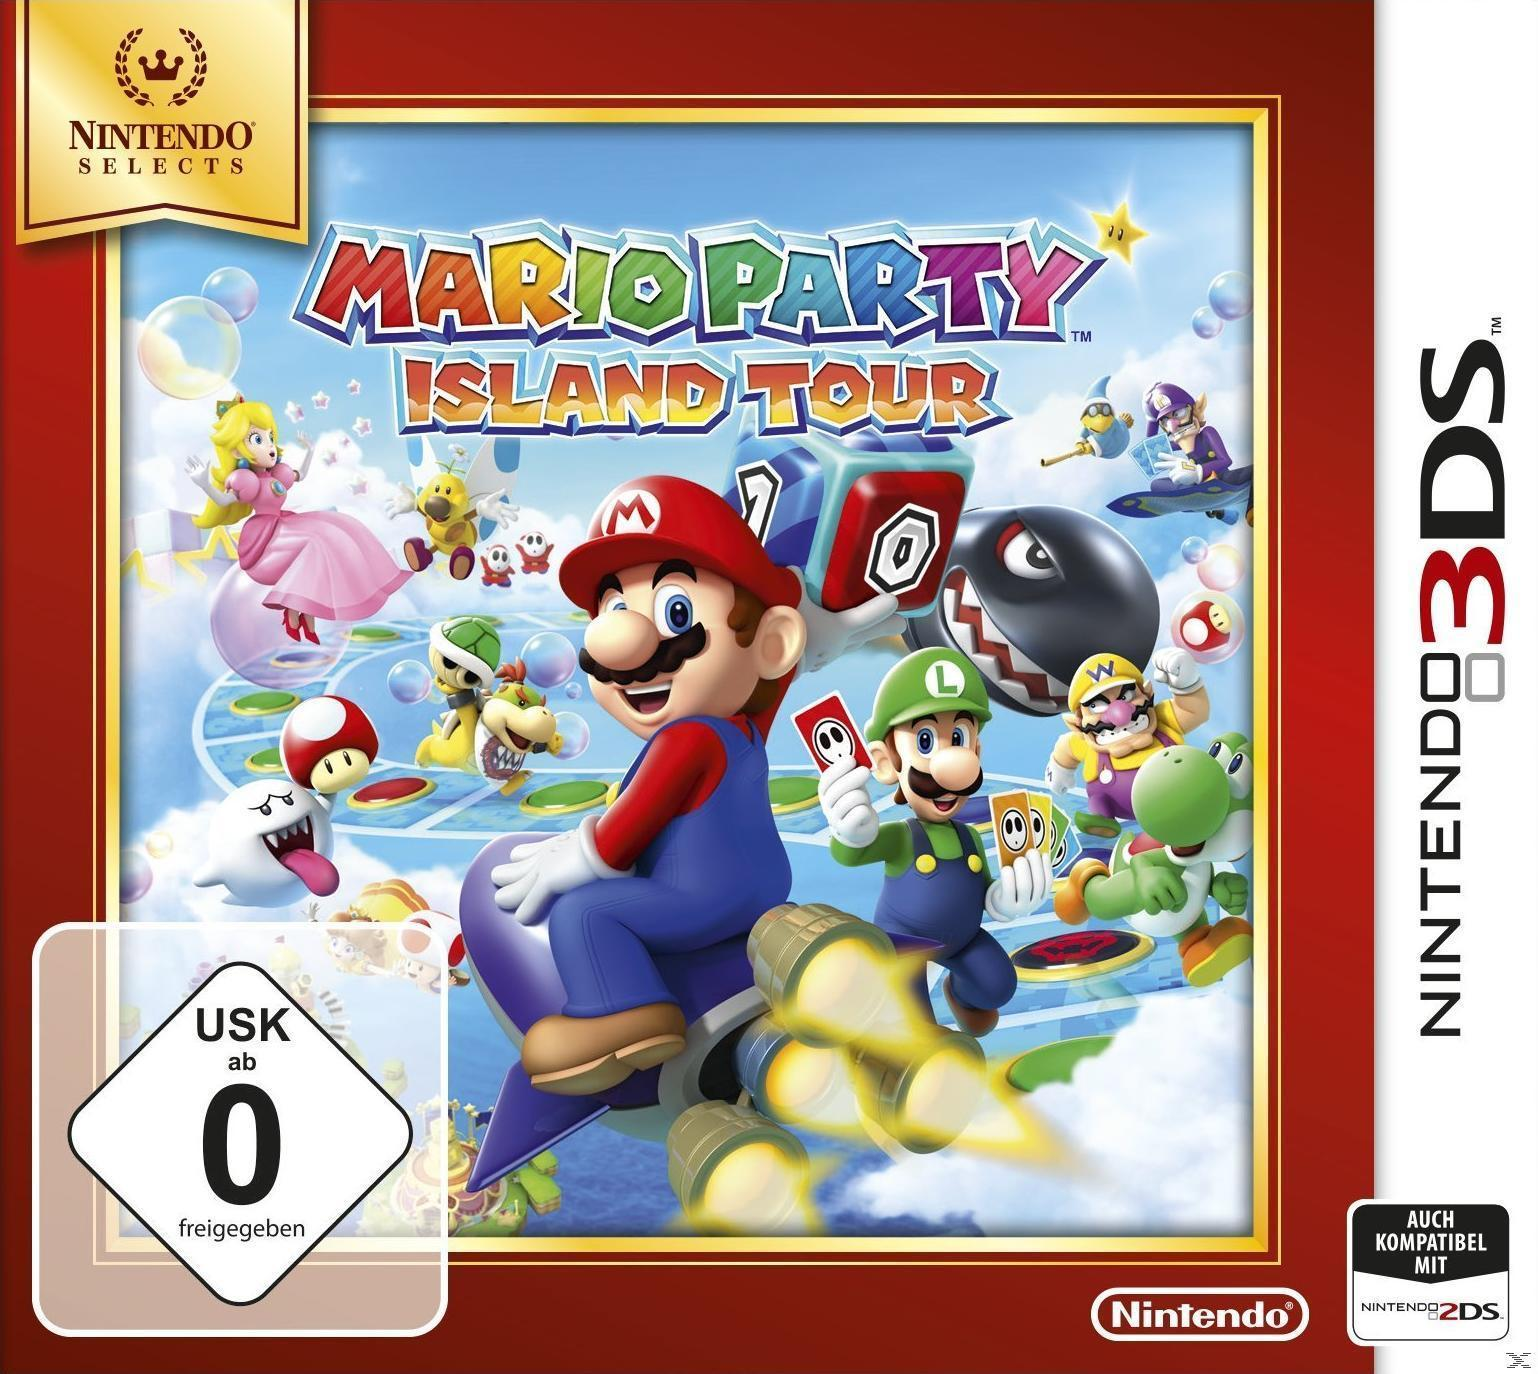 Mario Party: Island Tour (Nintendo Selects) (Nintendo 3DS) für 19,99 Euro